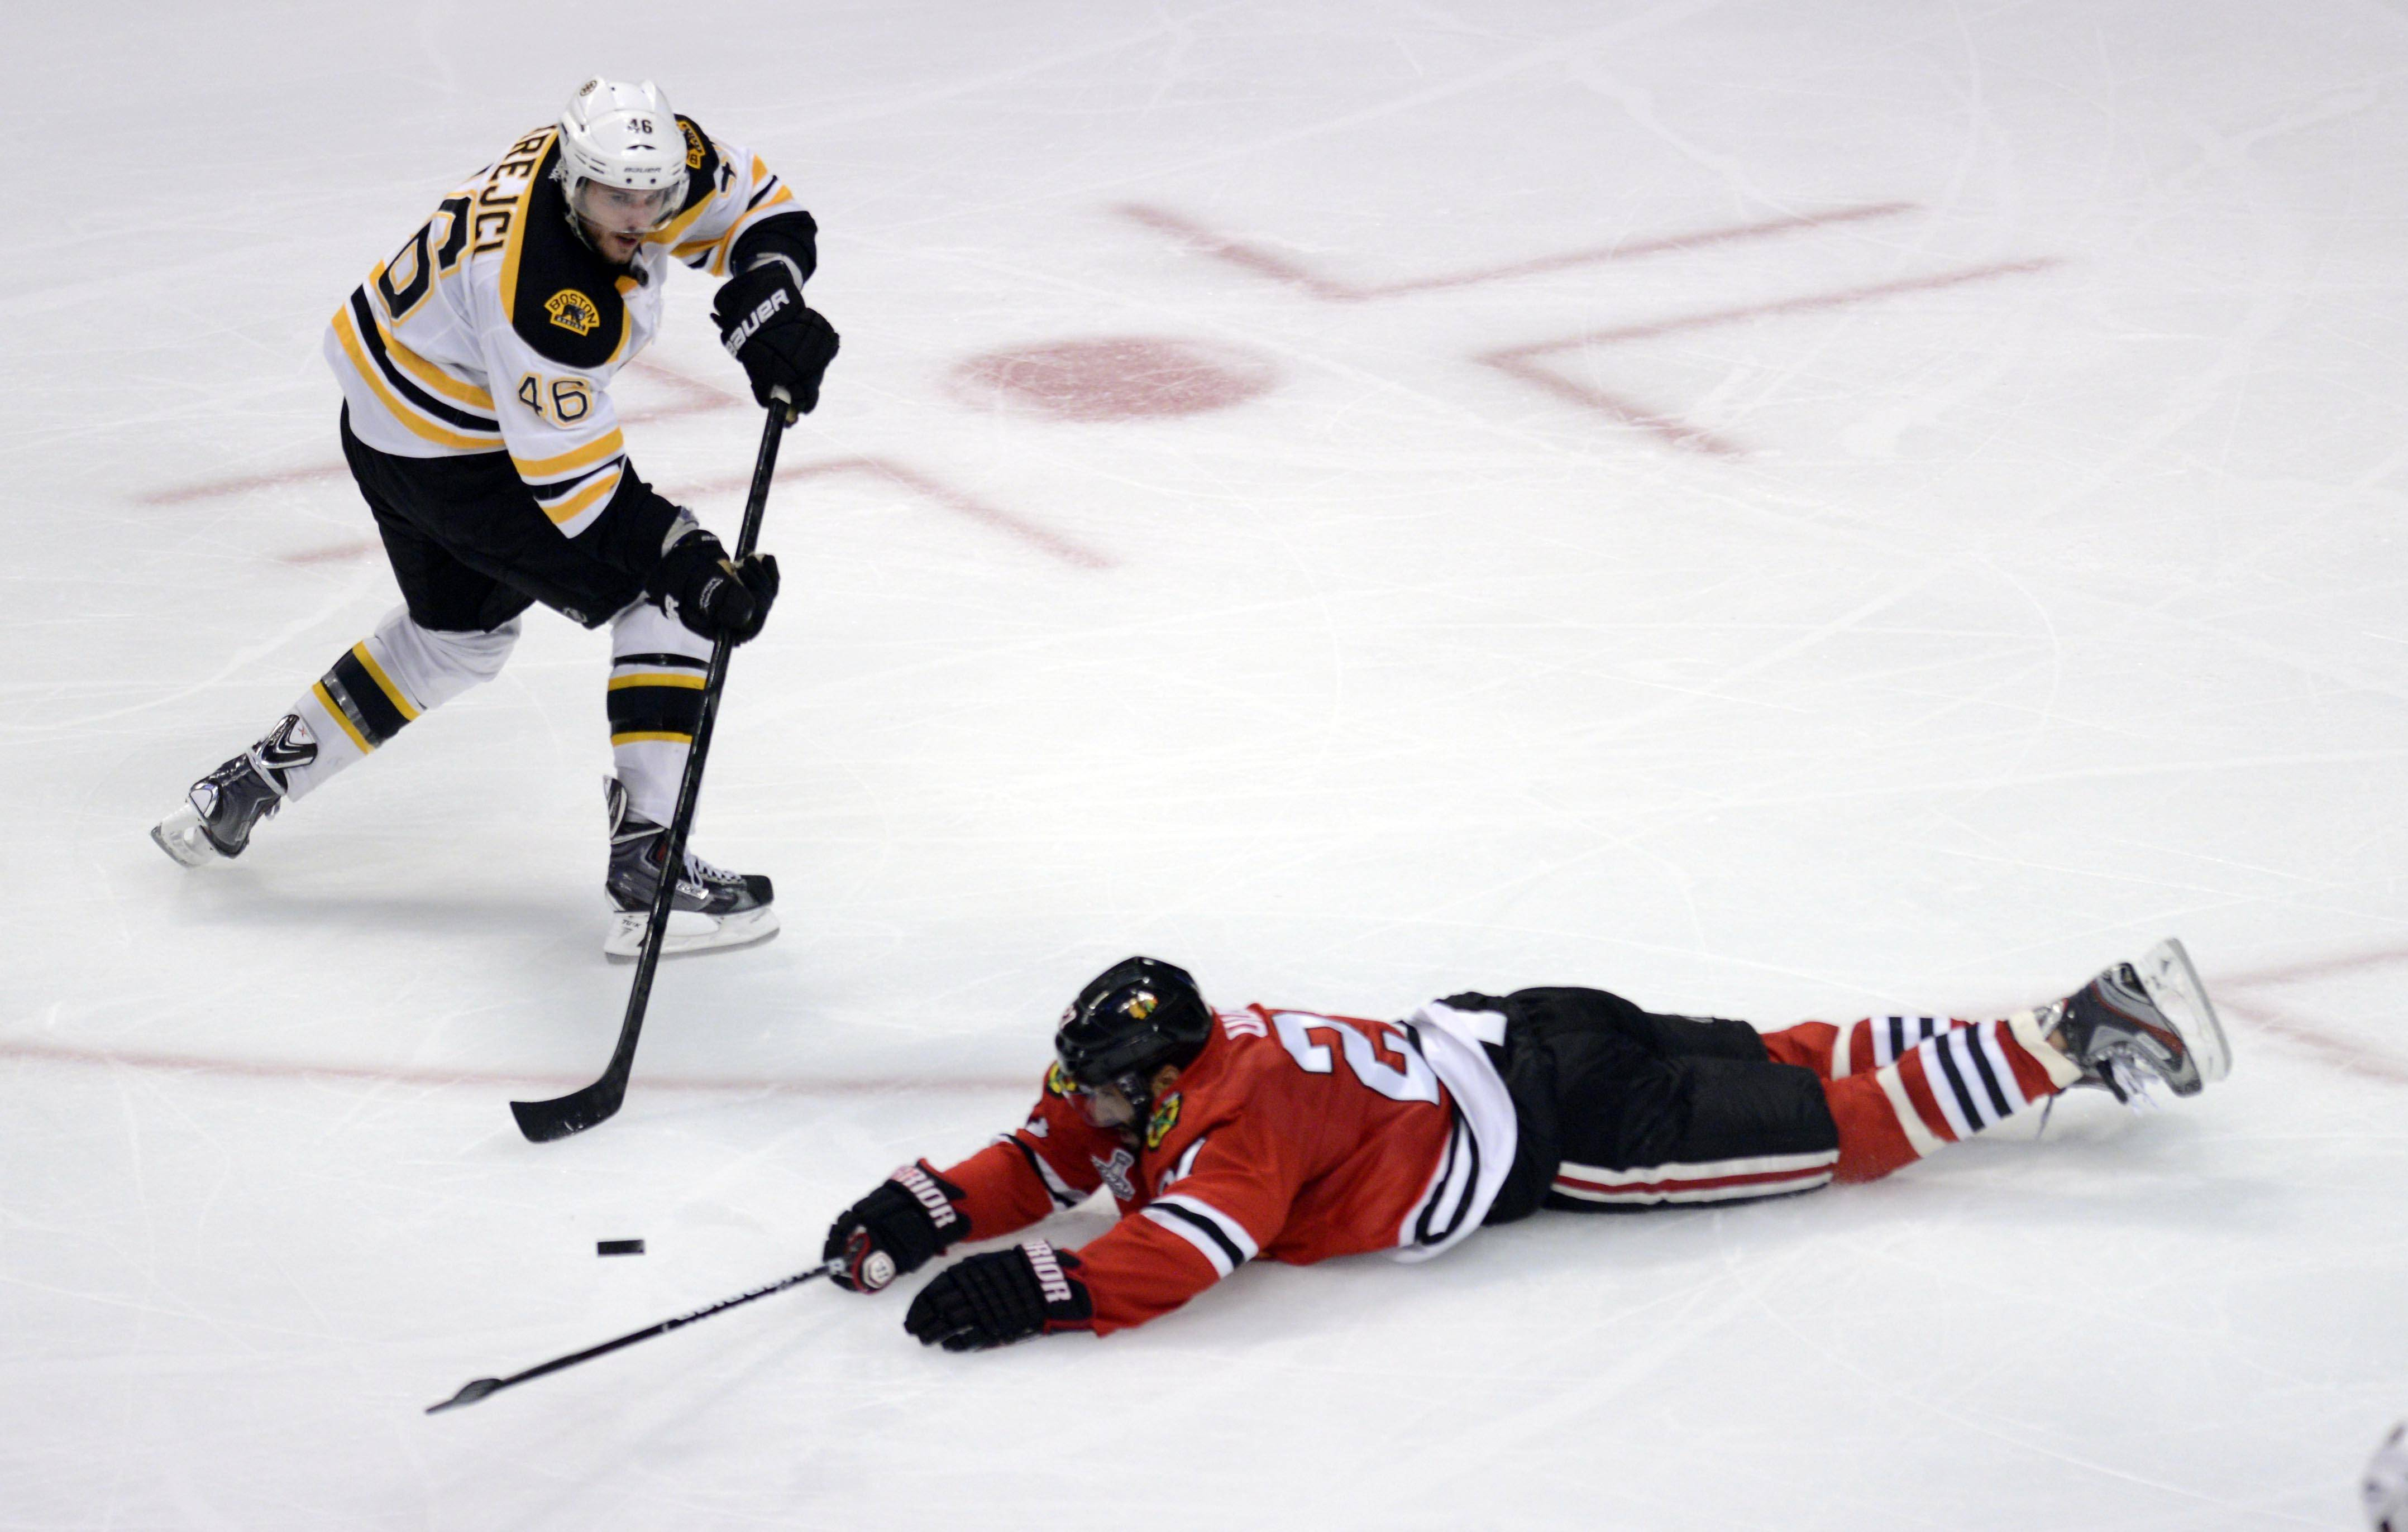 Chicago Blackhawks defenseman Johnny Oduya lays and slides on the ice to block a shot by Boston Bruins center David Krejci in the third period during Game 1 of the Stanley Cup Finals Wednesday at the Untied Center in Chicago.